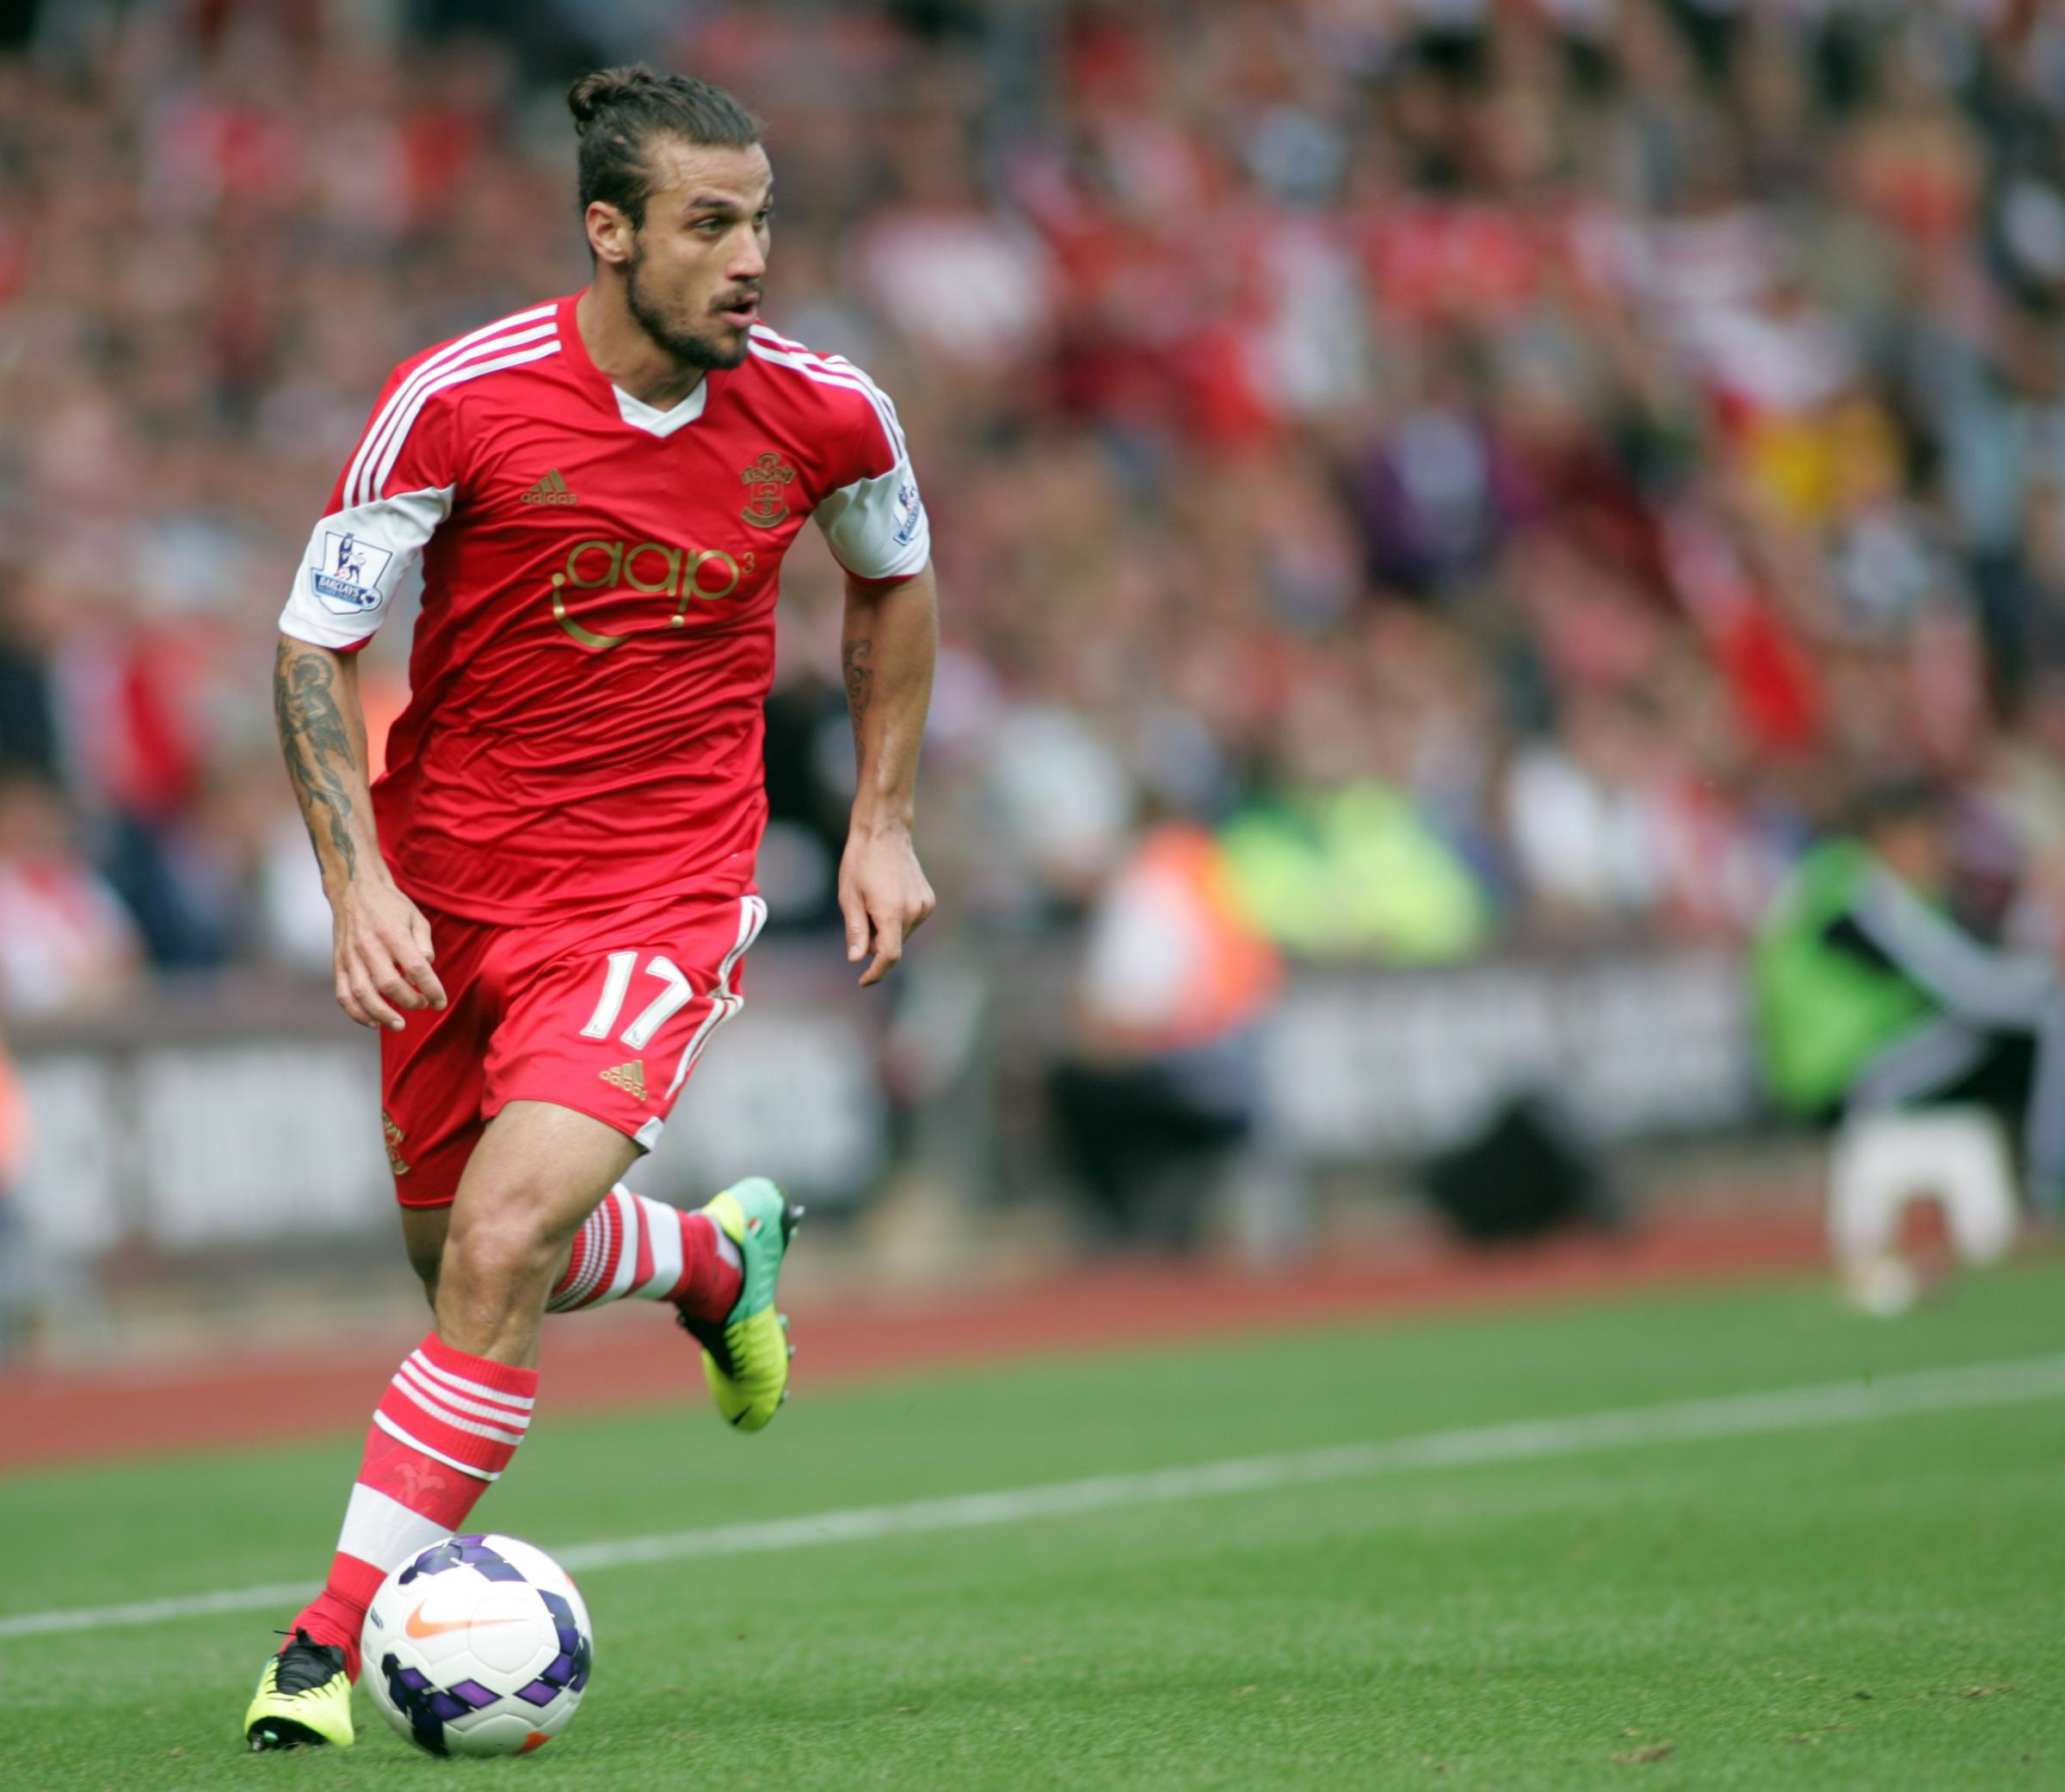 Osvaldo suspended for alleged headbutt